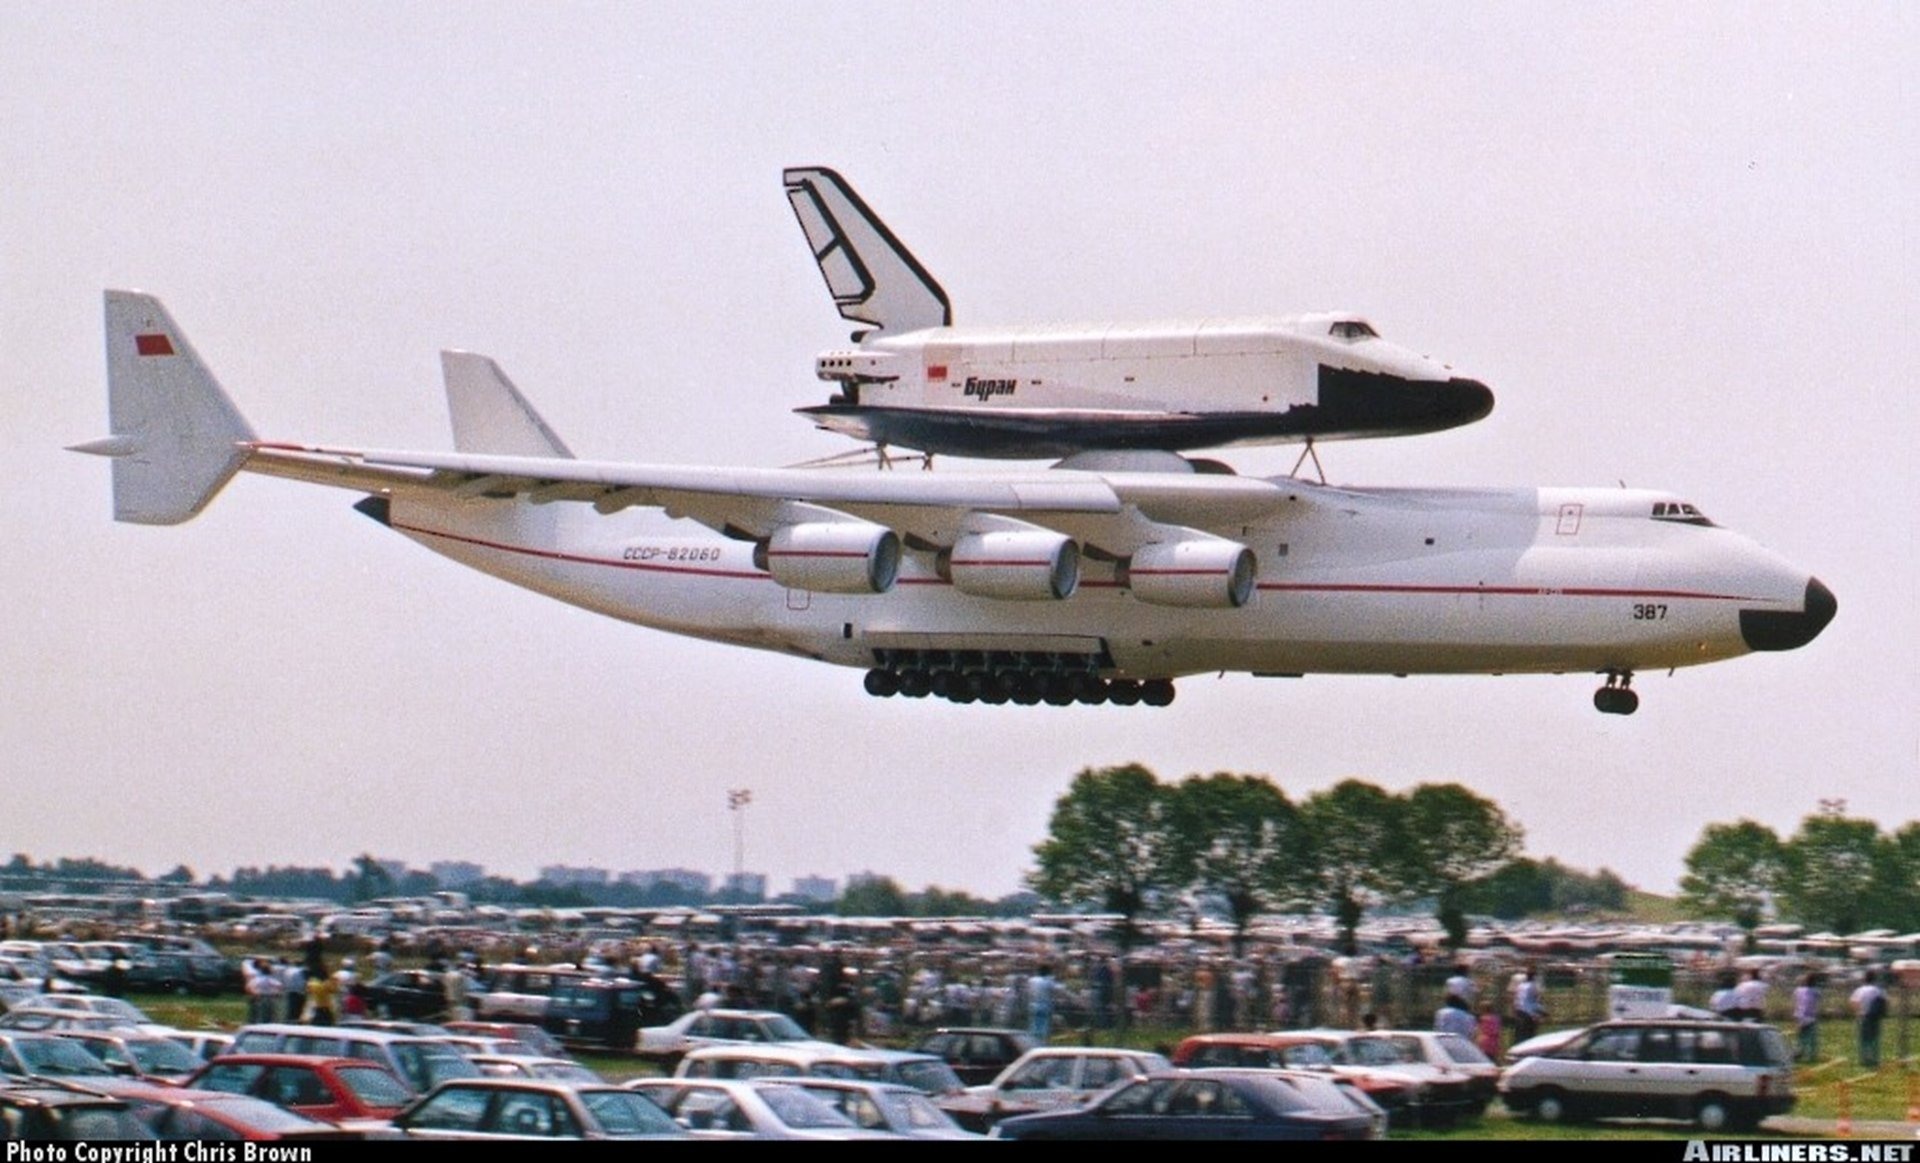 buran space shuttle compared to us - photo #27